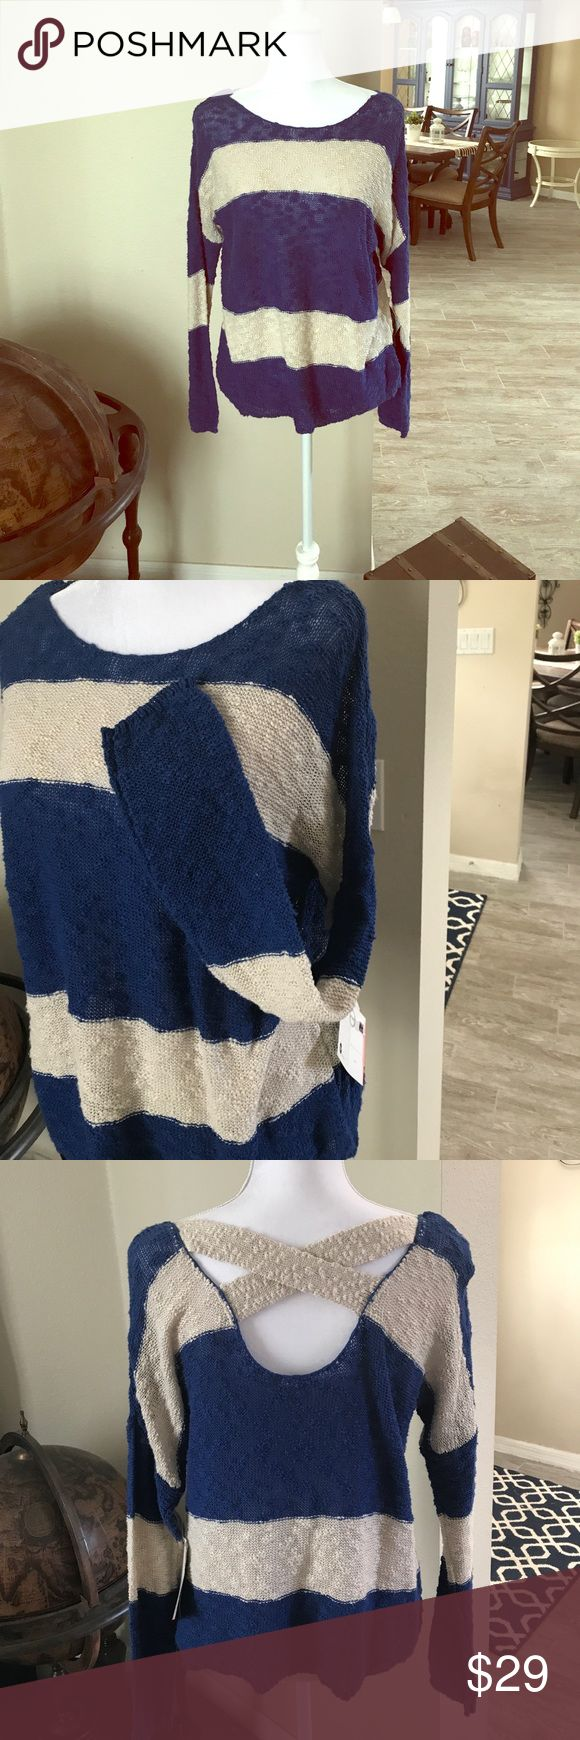 NWT Roxy Beachy Knit Criss Cross Sweater! SzS This wonderful sweater is light and delicately woven in a gorgeous nautical blue and cream. It has criss cross detailing on the scoop back and the fit is a body skimming drape - would be great over your bikini out on the boat this summer or with a pair of cut off shorts and flip flops at the resort! 100% Cotton. Roxy Tops